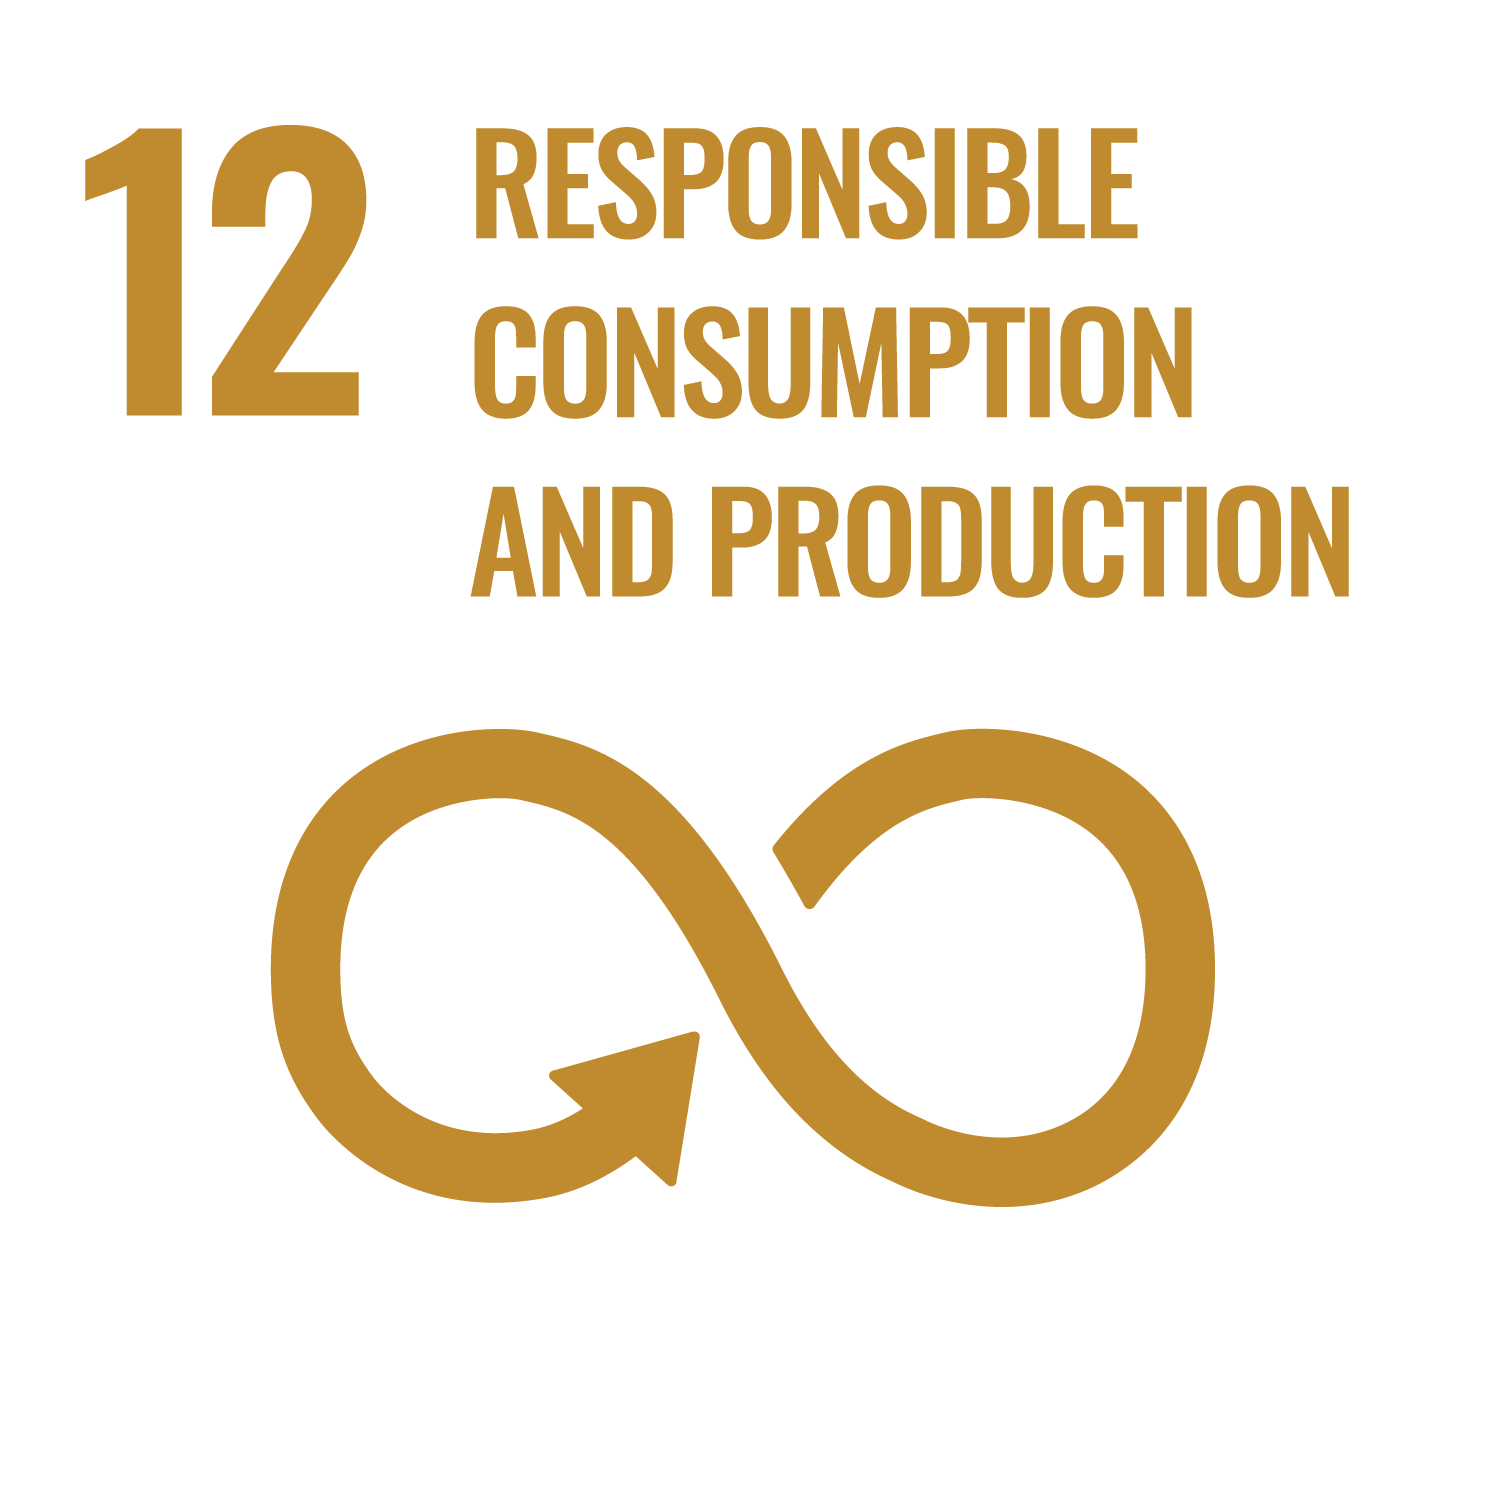 United Nations Sustainable Development Goals - responsible consumption and production